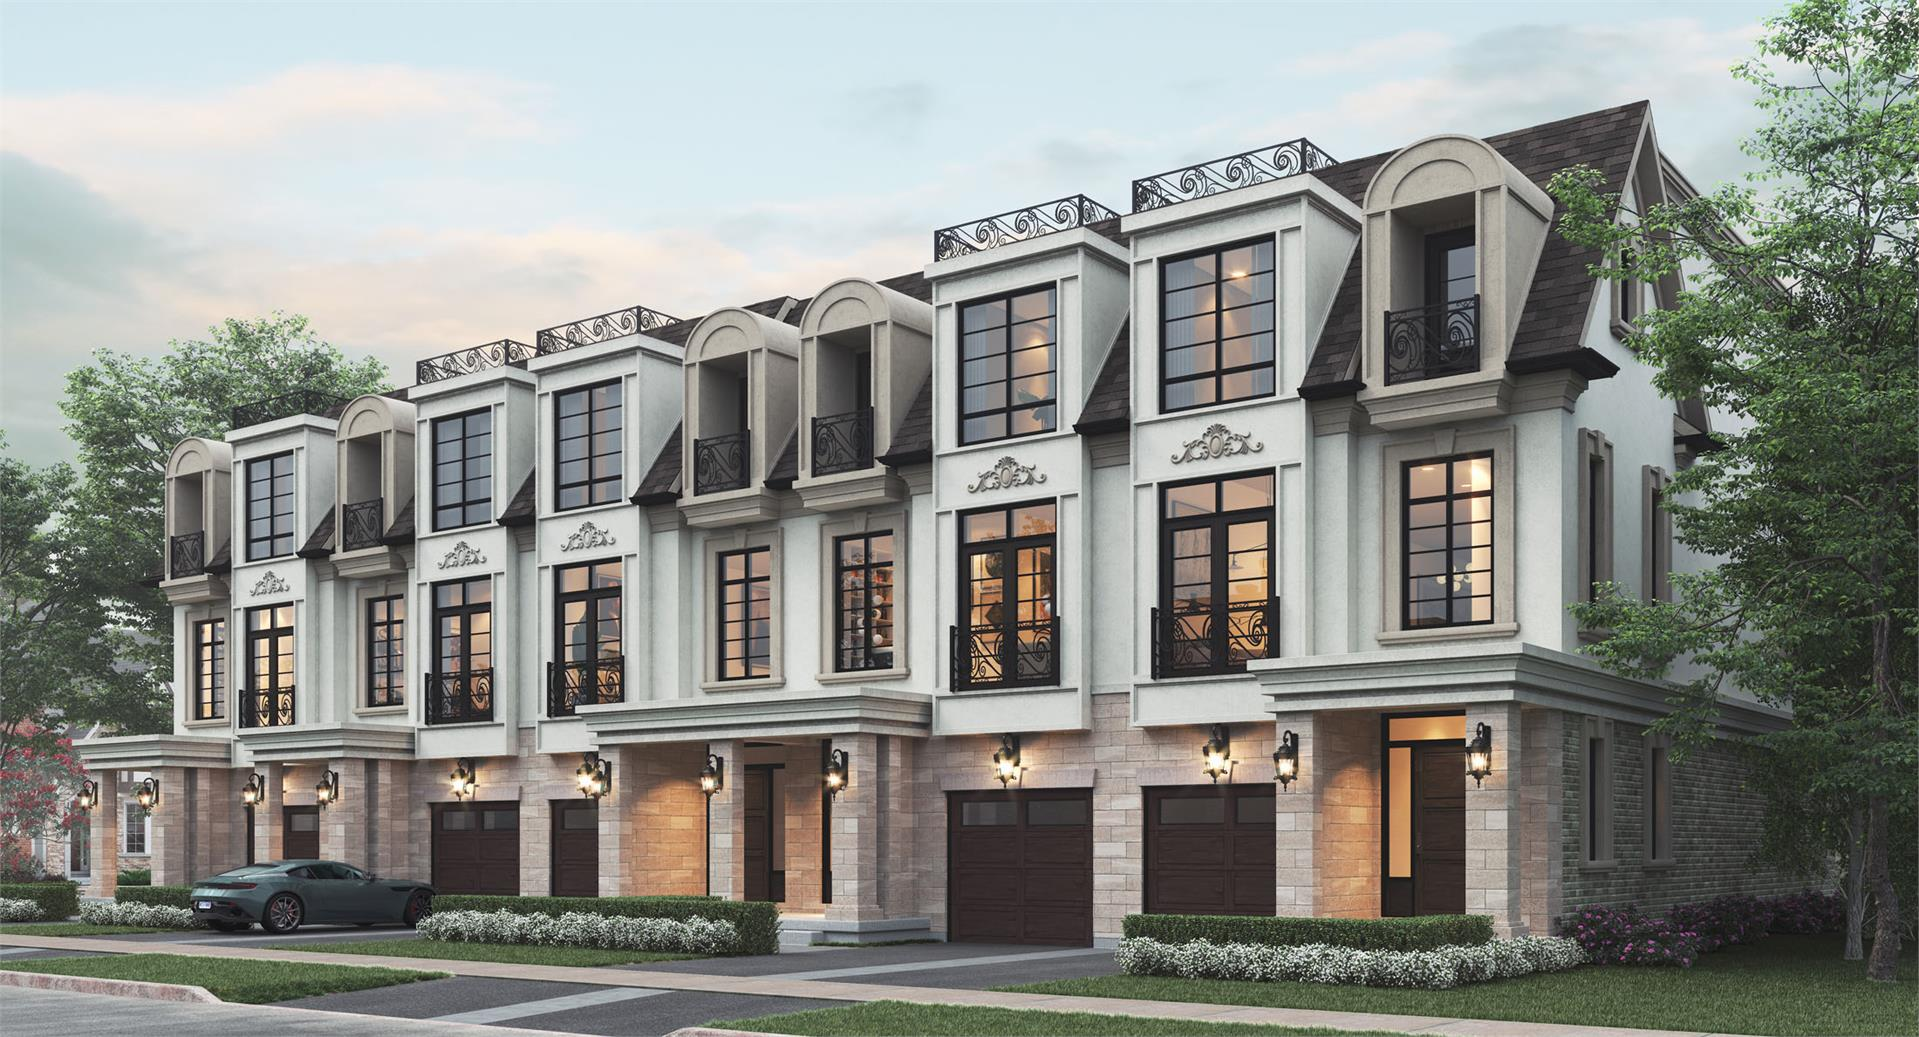 121EastTownhomes_Exterior1